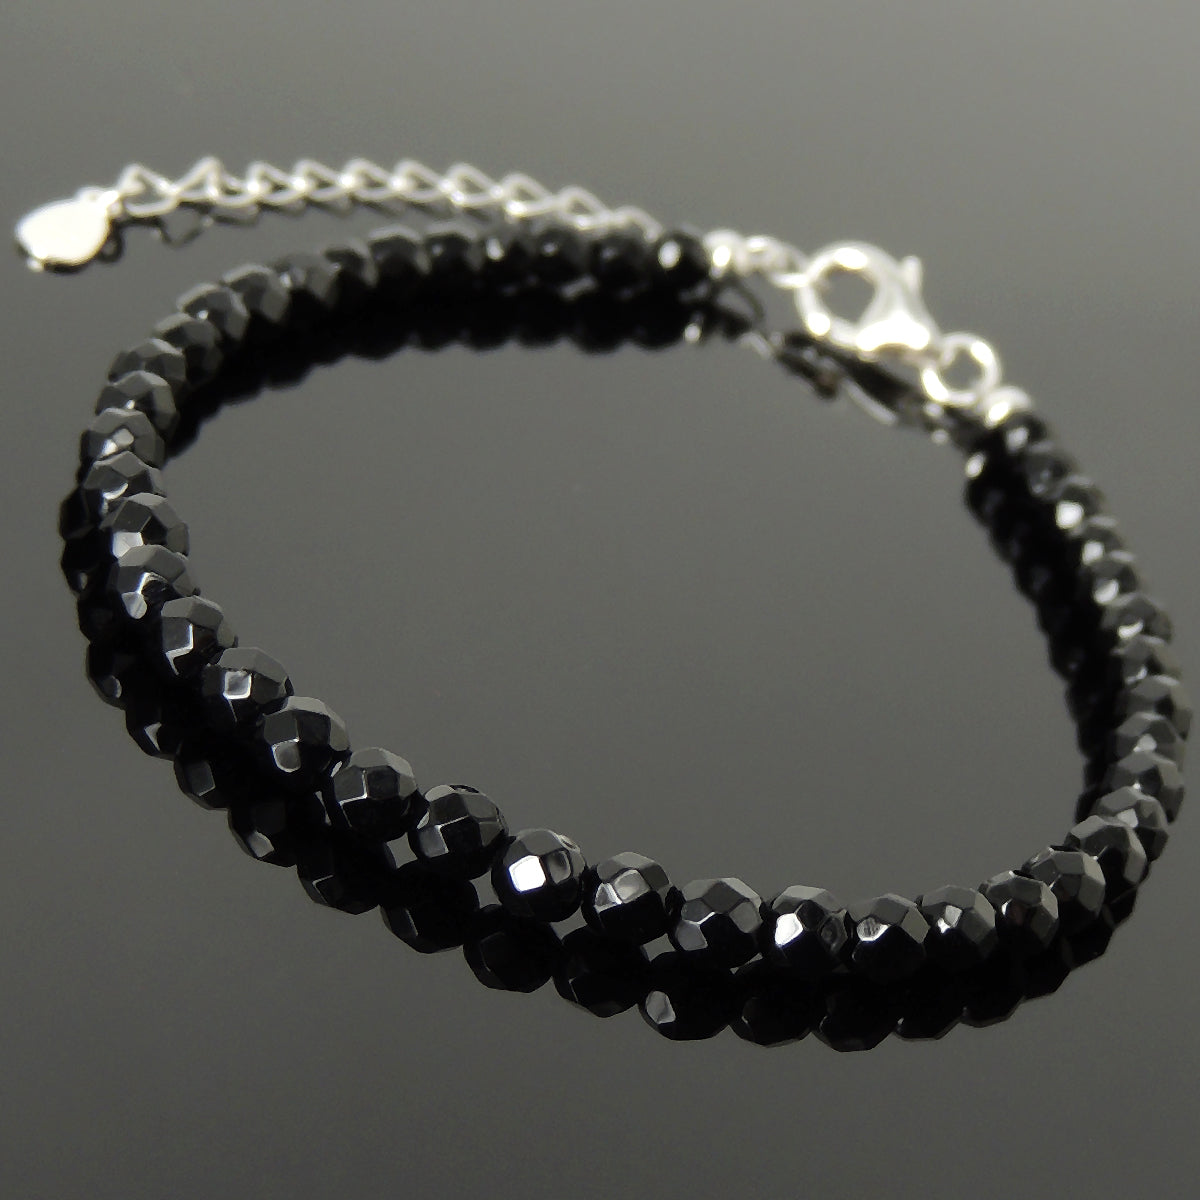 4mm Faceted Black Onyx Healing Gemstone Bracelet with S925 Sterling Silver Chain & Clasp - Handmade by Gem & Silver BR1234